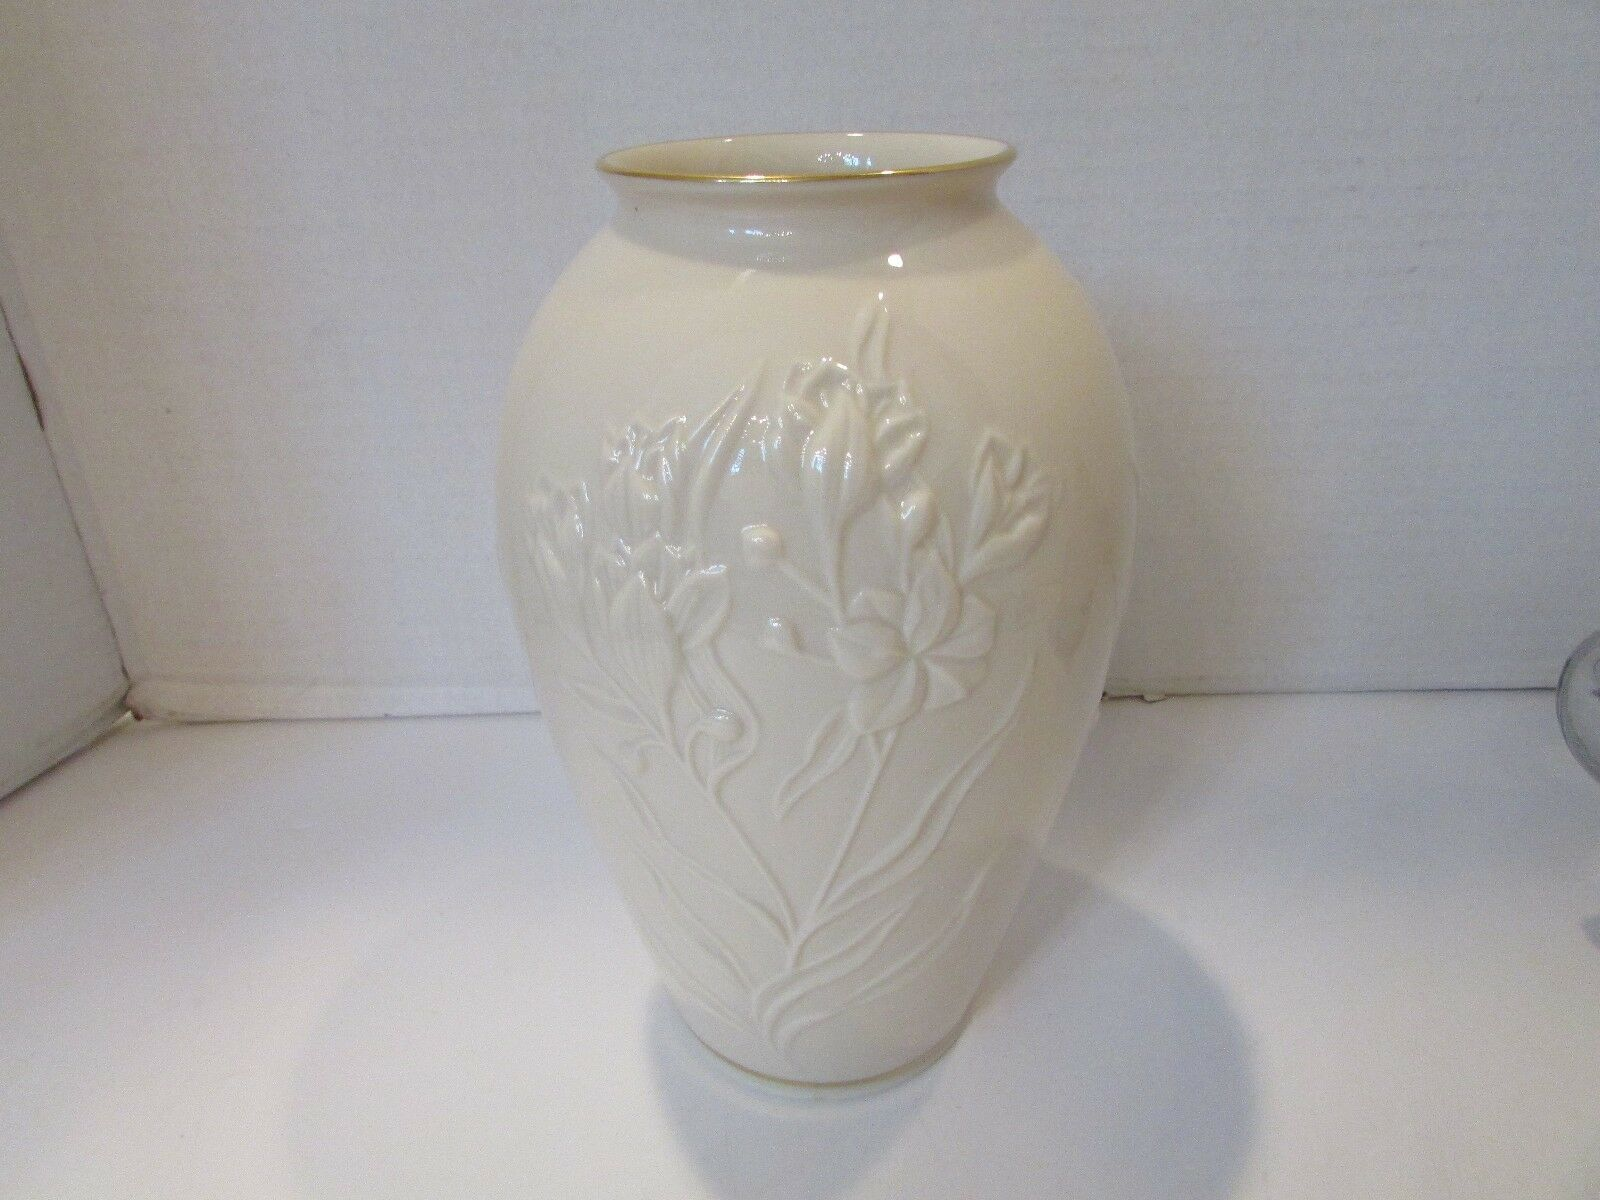 "LENOX MASTERPIECE MEDIUM FLORAL VASE 8"" TALL  FLOWERS GOLD RIMMED USA STICKER"